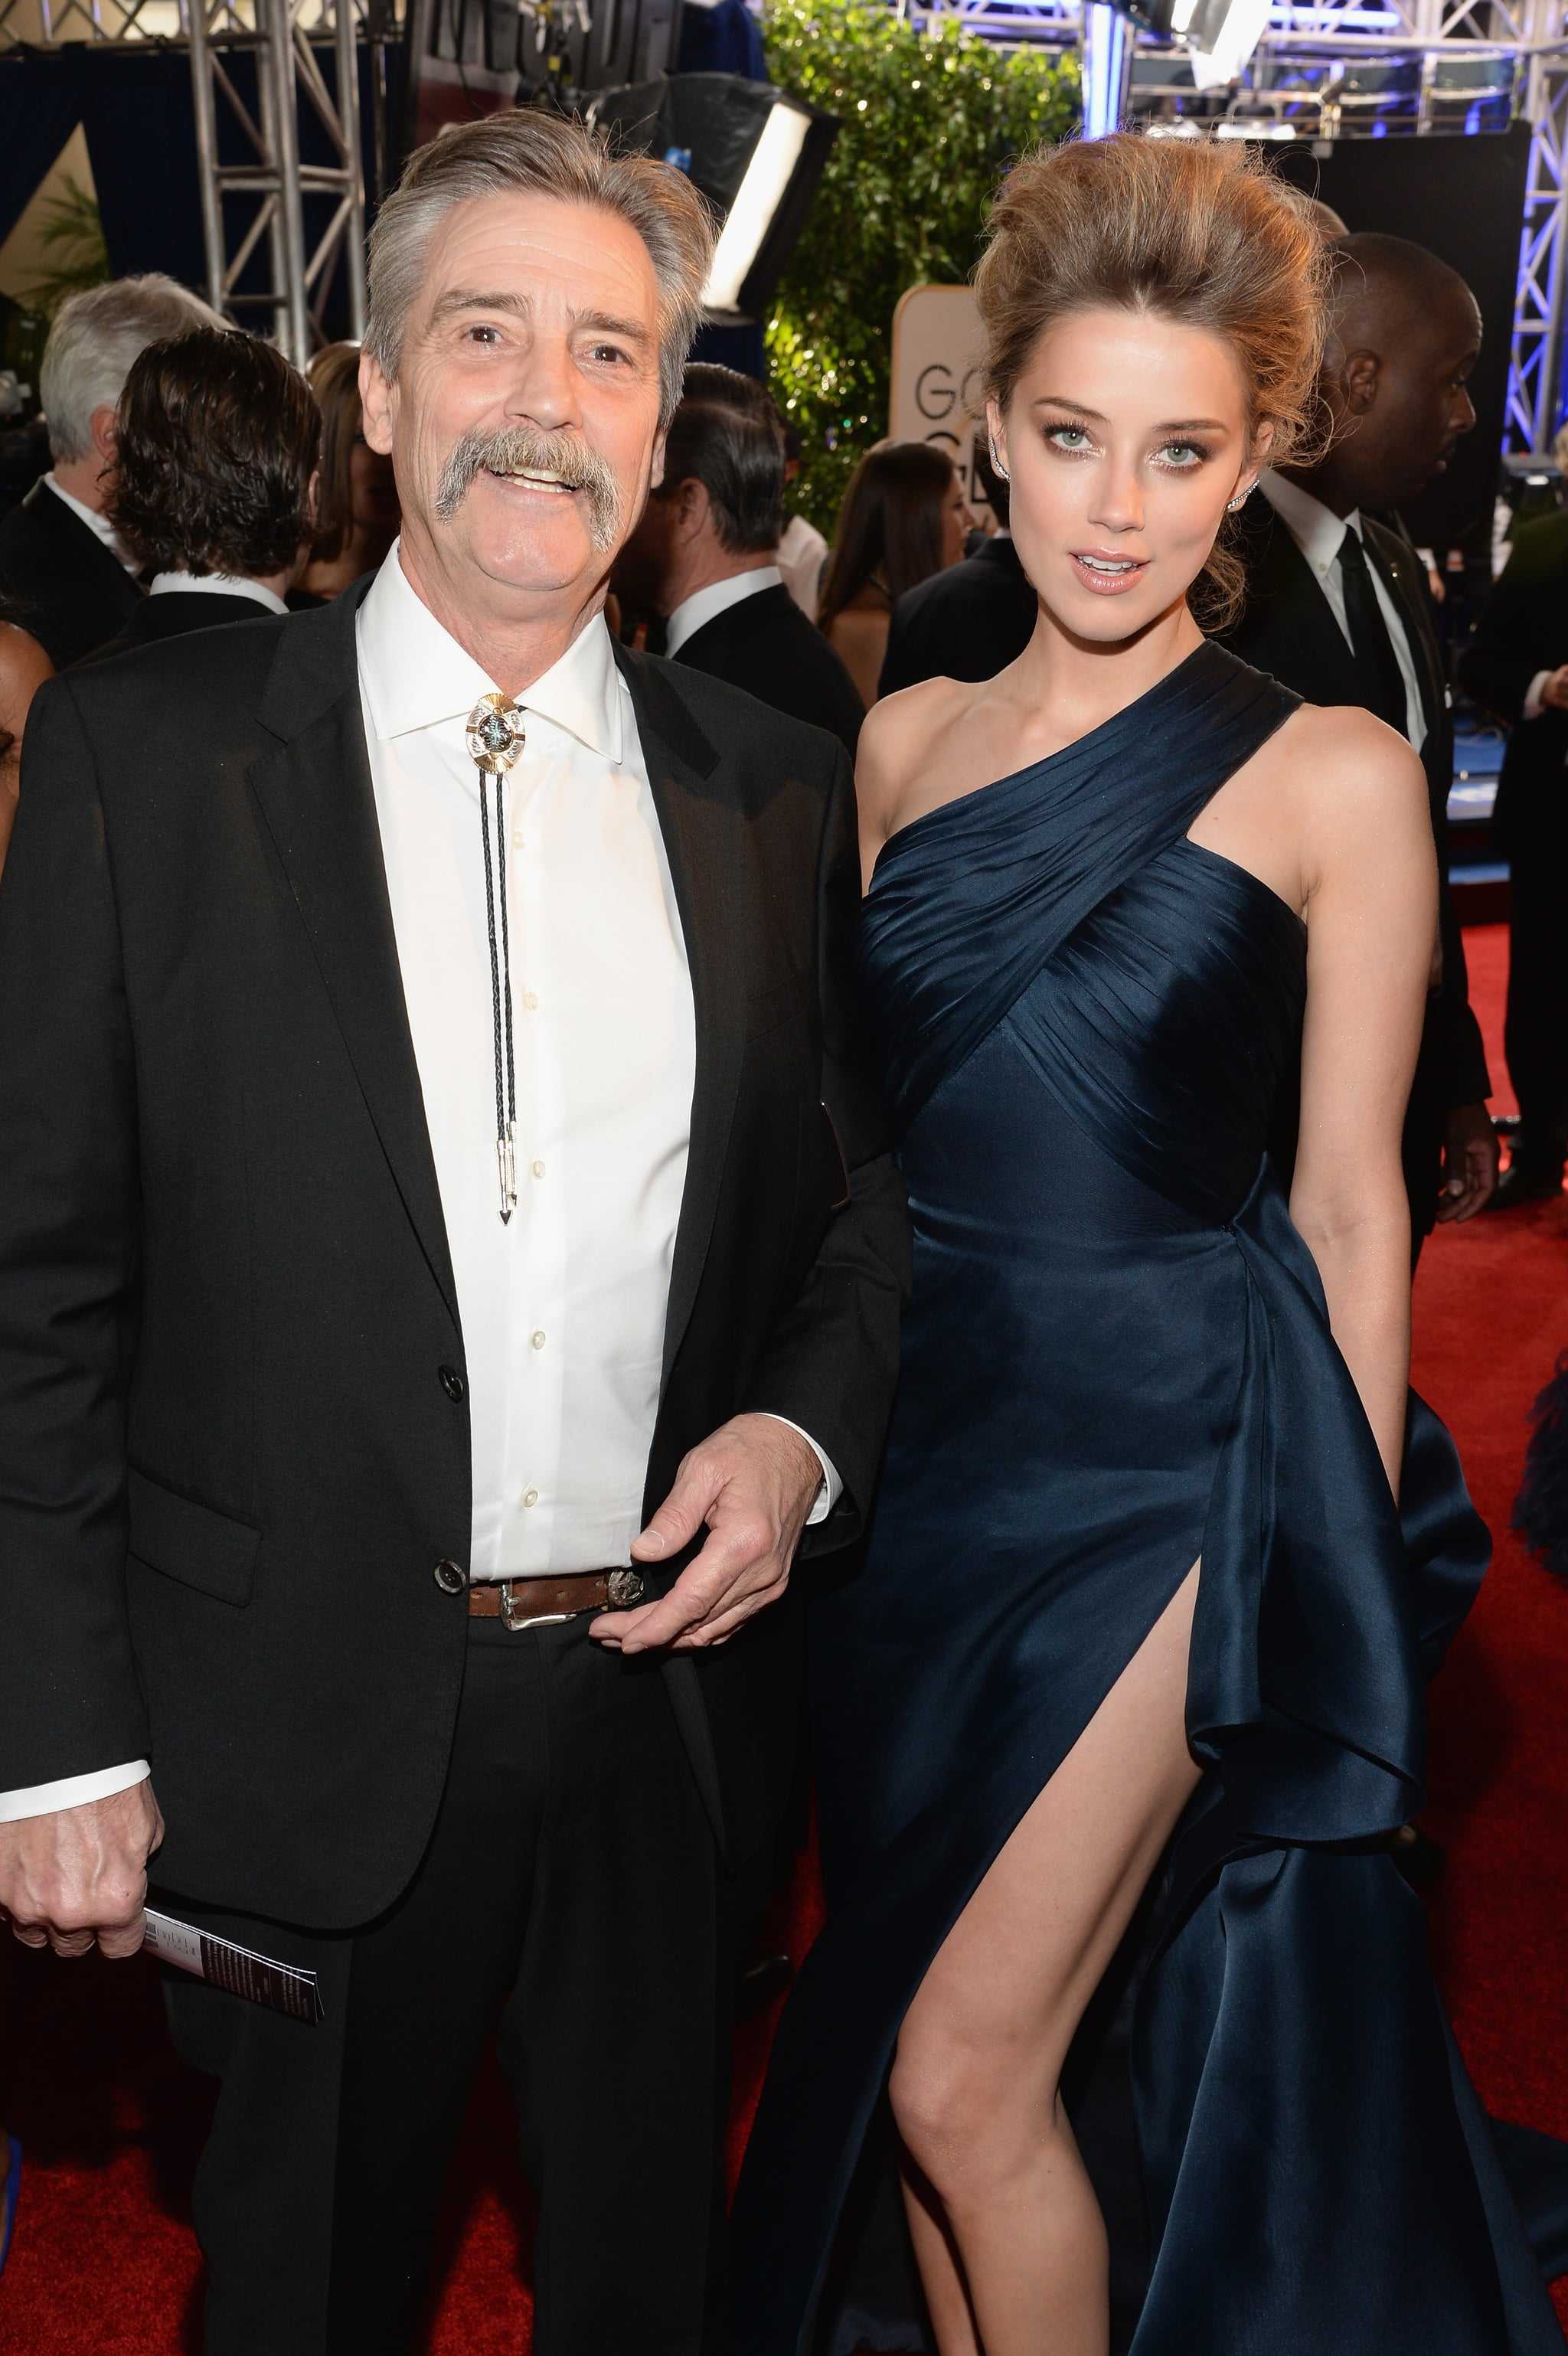 Amber Heard posed with her dad, David, on the red carpet at the Globes.